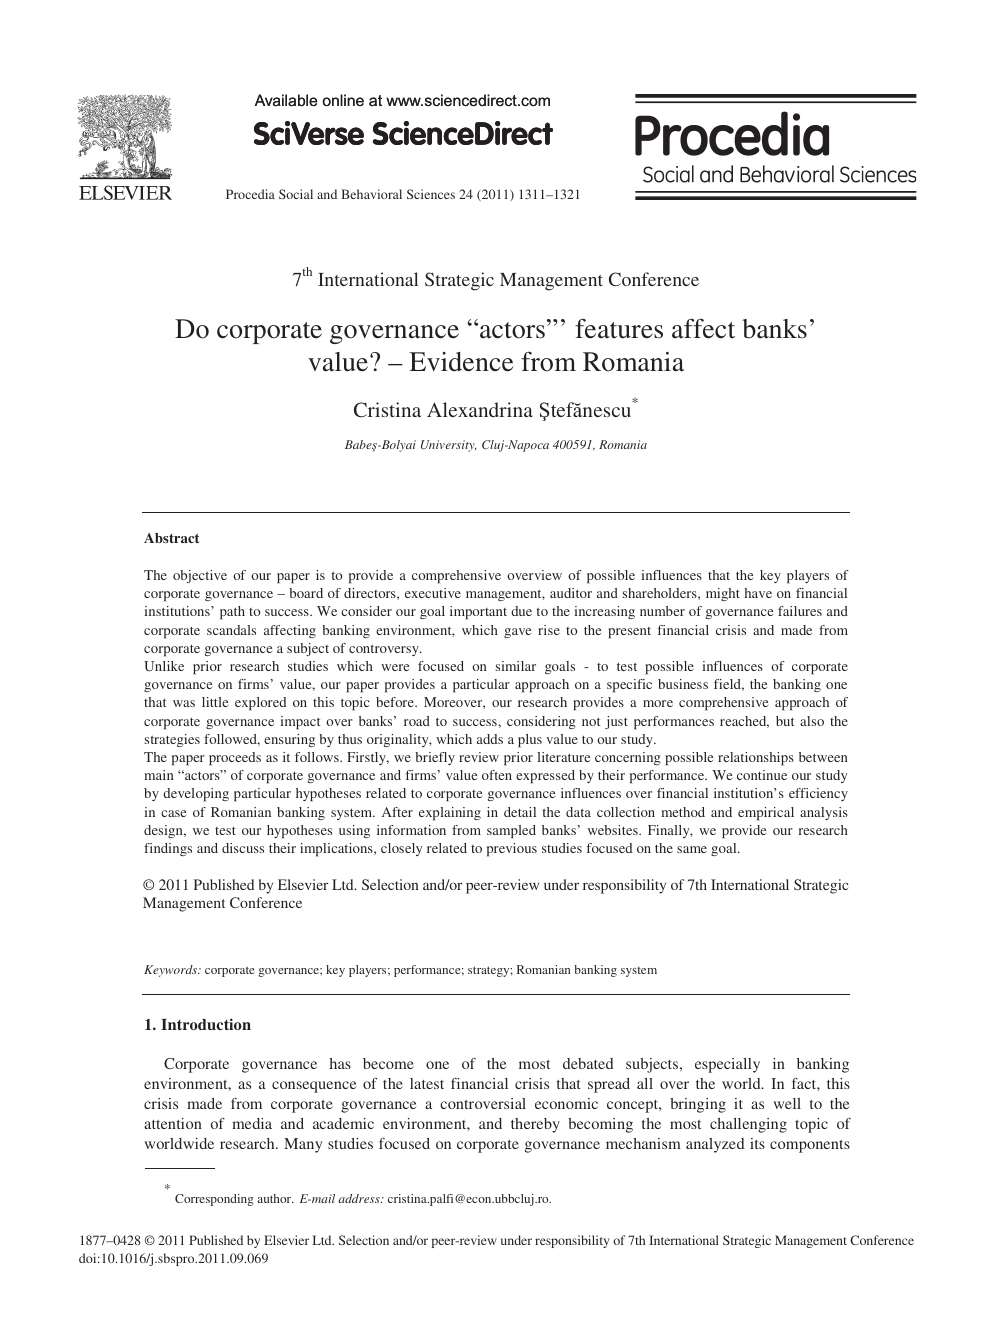 corporate governance research paper topics